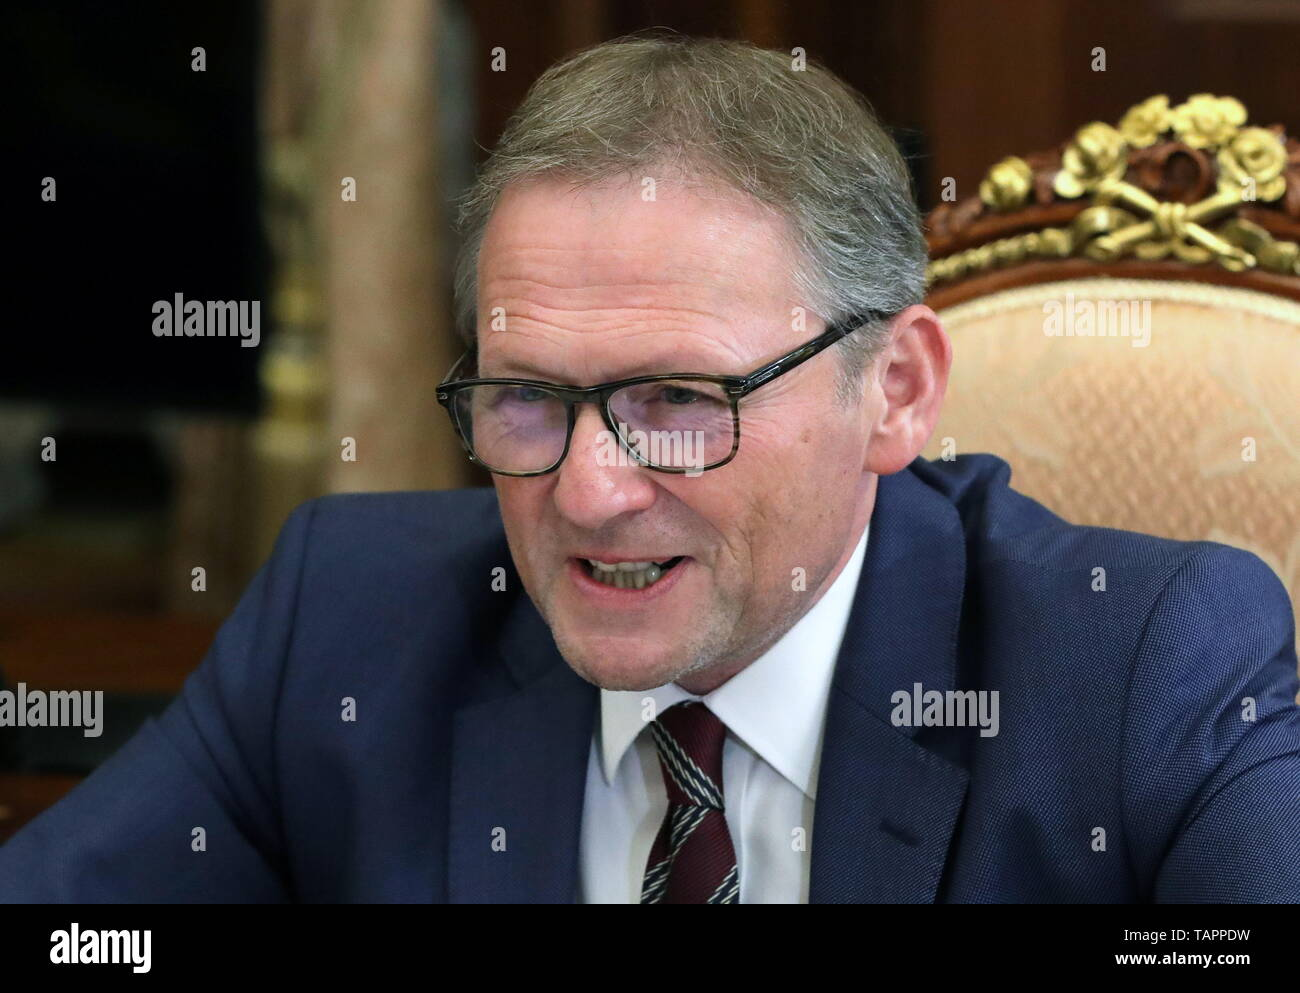 Moscow, Russia. 27th May, 2019. MOSCOW, RUSSIA - MAY 27, 2019: Russian Presidential Commissioner for Entrepreneurs' Rights Boris Titov during a meeting with Russia's President Vladimir Putin at the Moscow Kremlin. Mikhail Klimentyev/Russian Presidential Press and Information Office/TASS Credit: ITAR-TASS News Agency/Alamy Live News - Stock Image